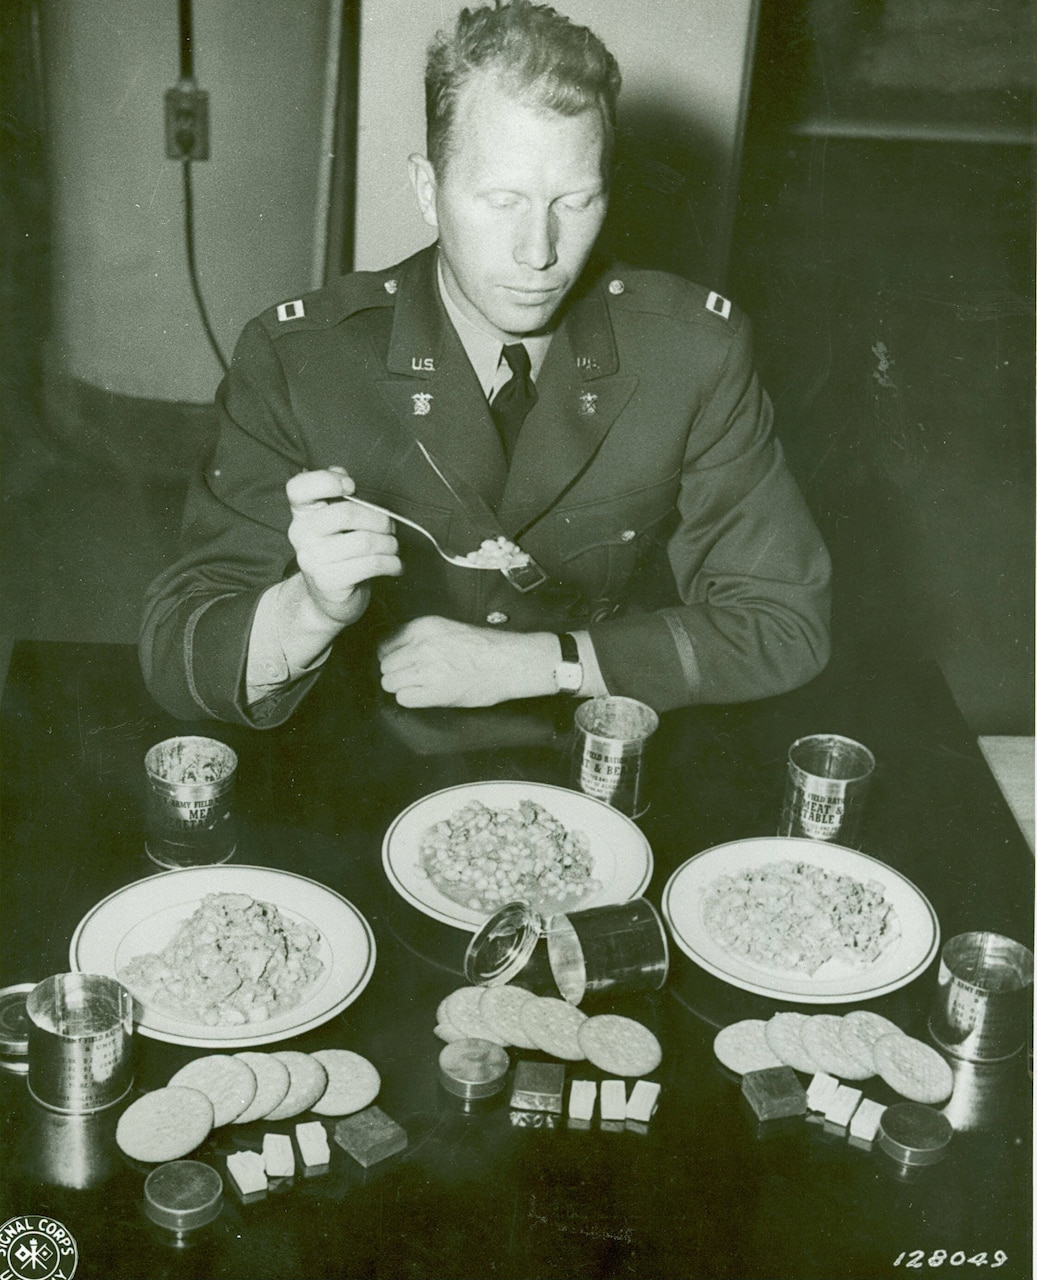 A soldier eats food.